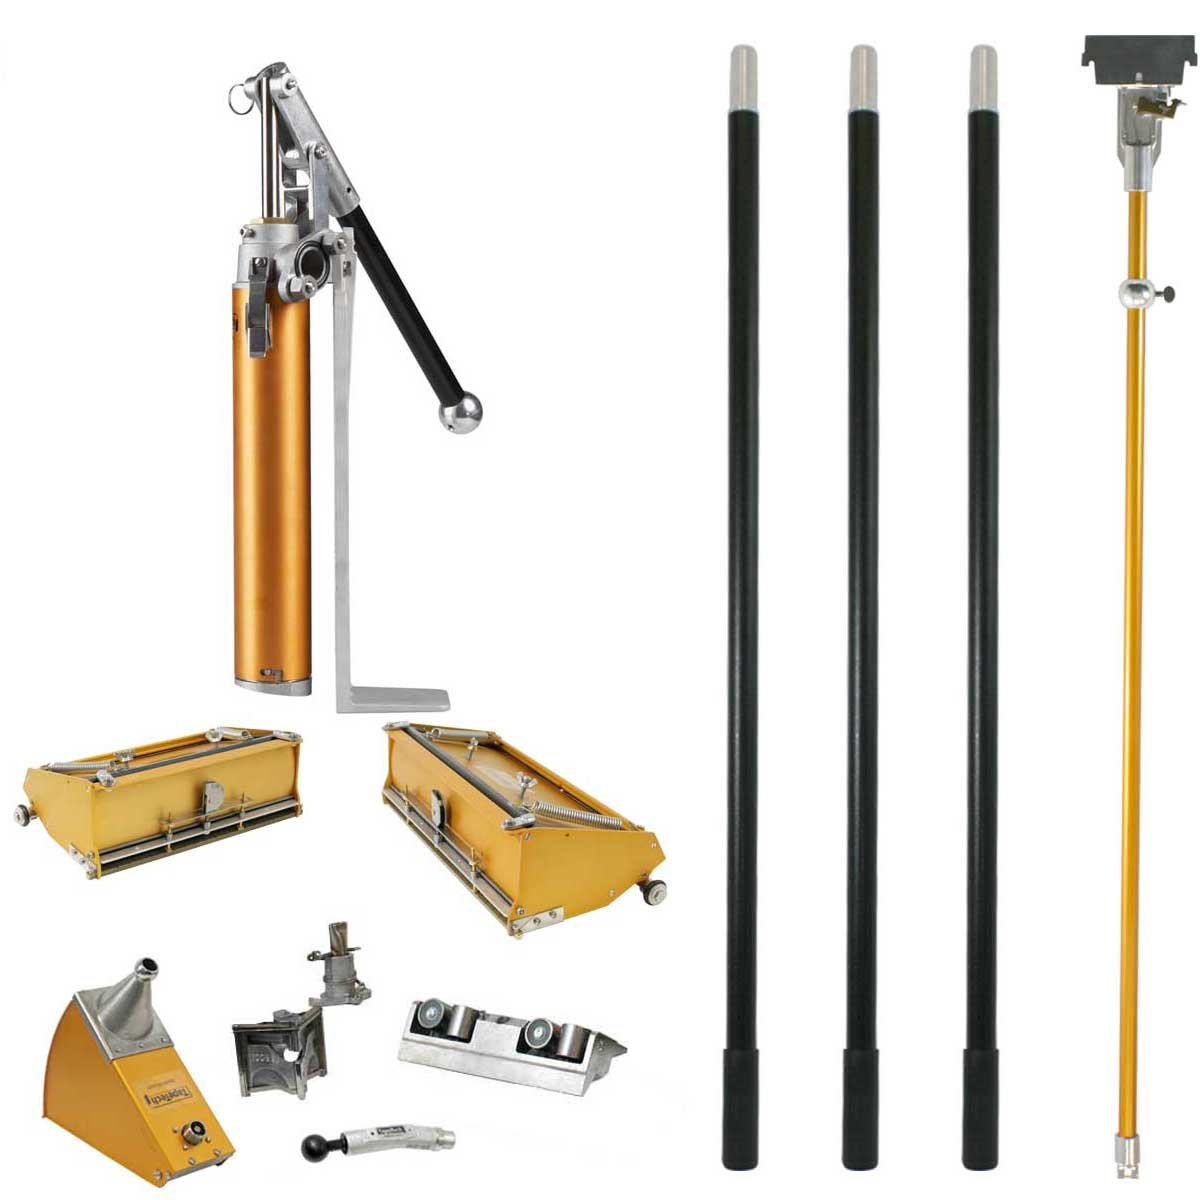 TapeTech Full Drywall Finishing Set with Extra Handles, 10'' & 12'' Flat Boxes, Angle Head, Angle Box, Corner Roller, Pump